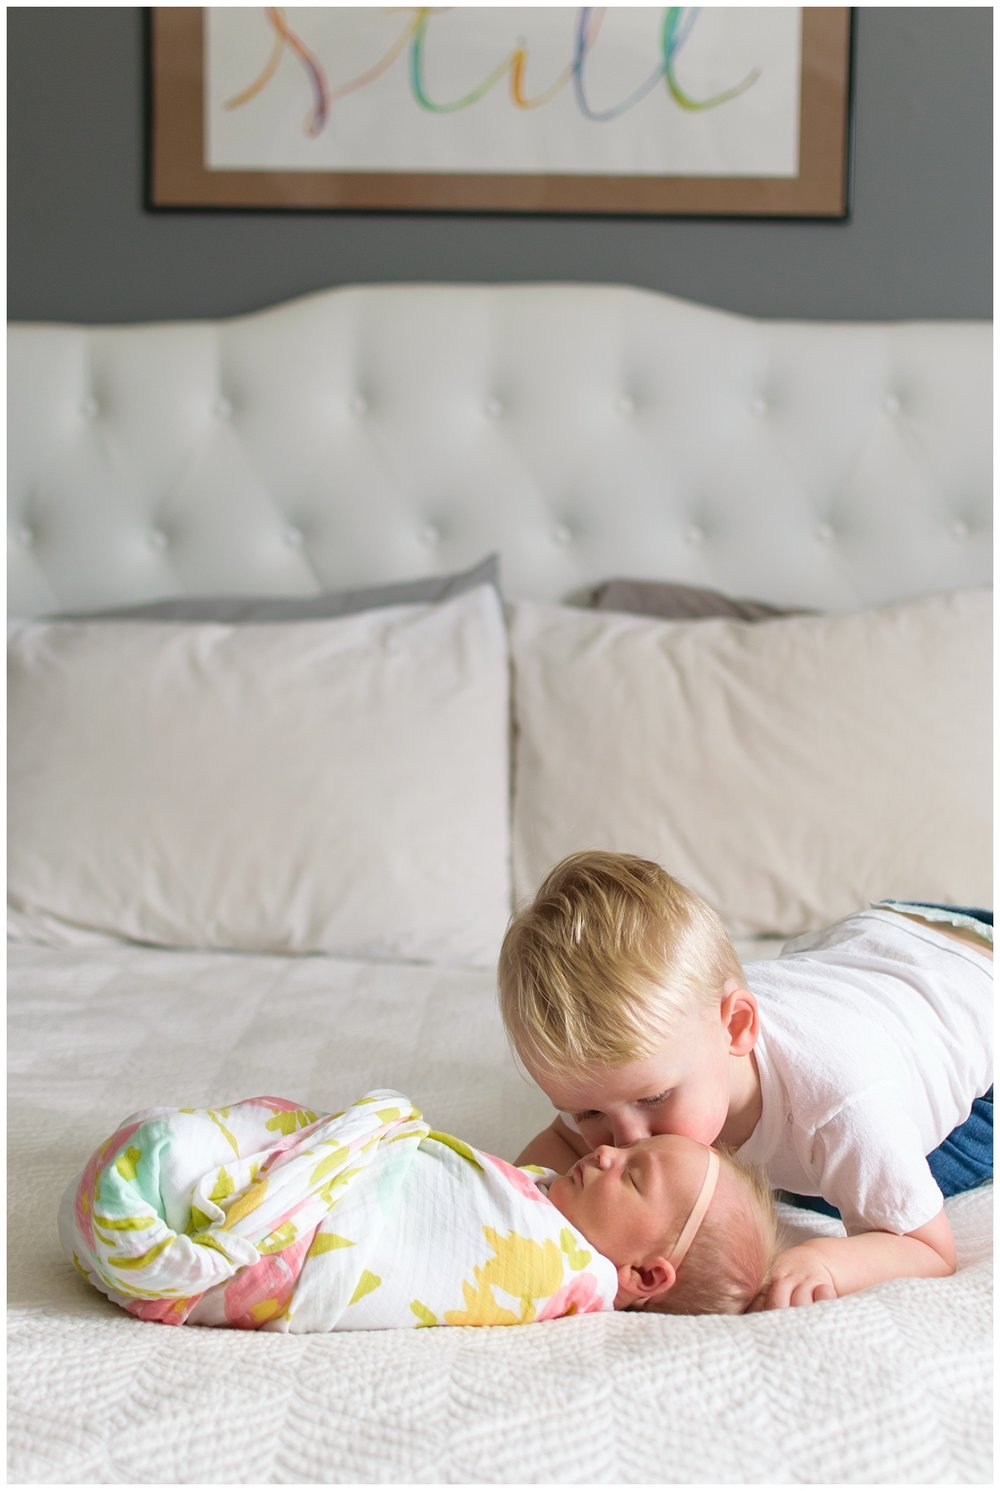 this image was taken during a lifestyle newborn family session. the baby girl is laying on the bed and her brother is kissing her cheek.